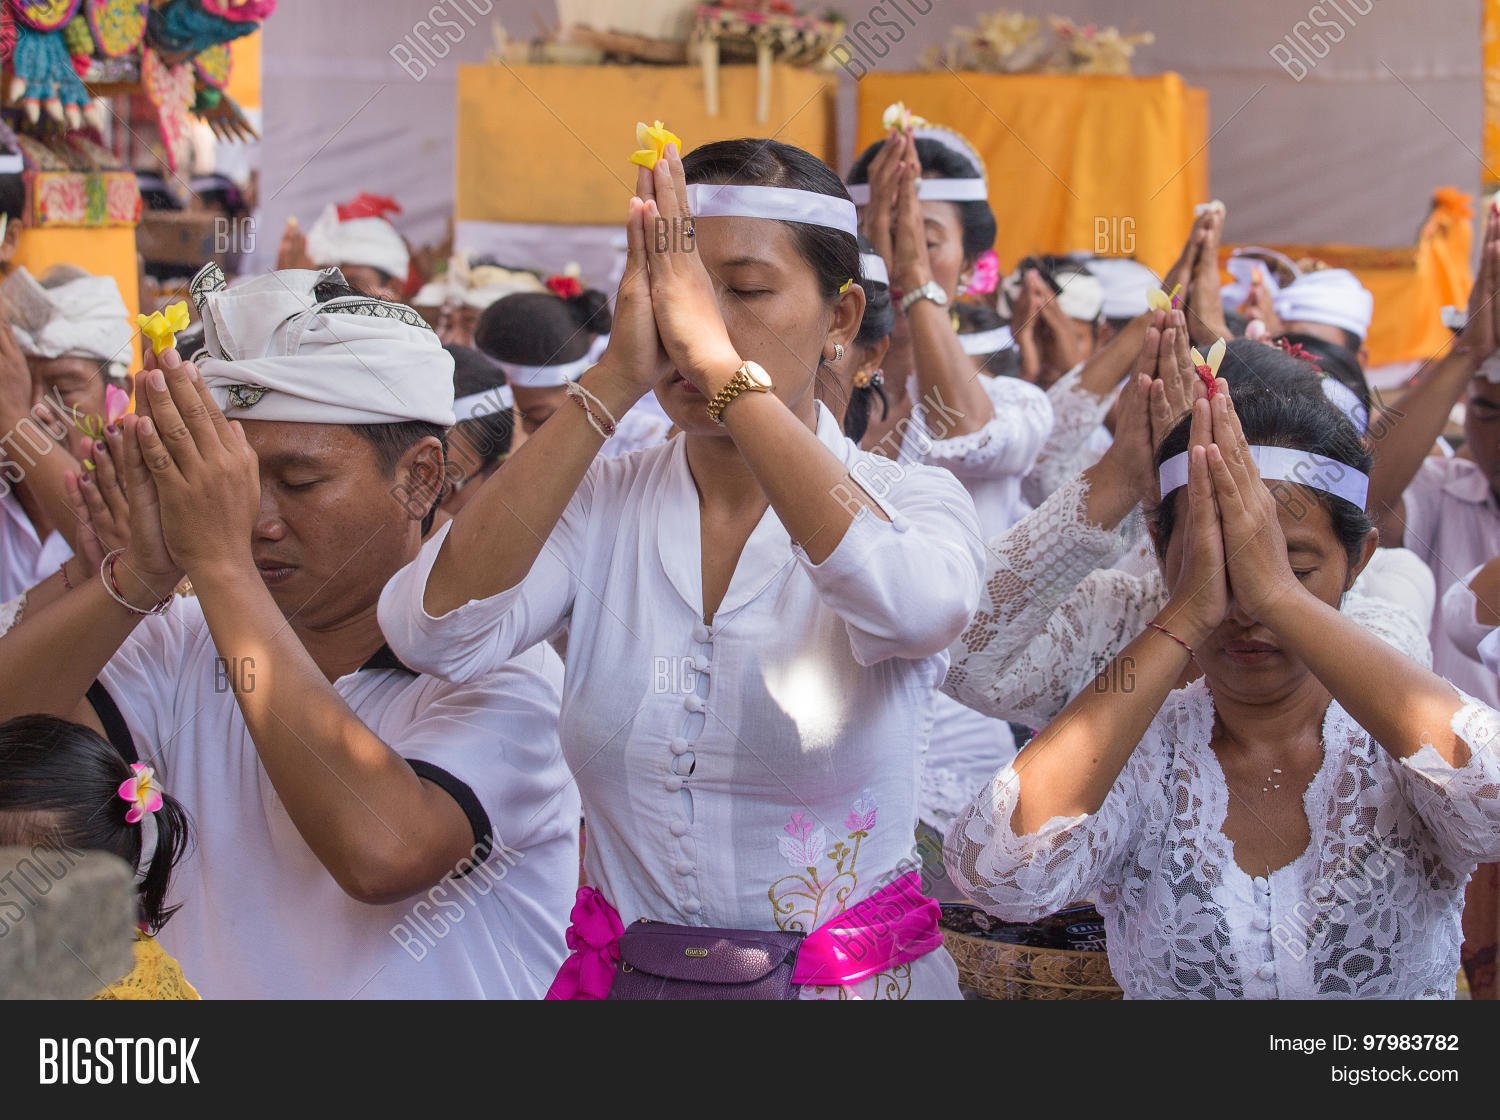 Indonesian People Image Photo Free Trial Bigstock